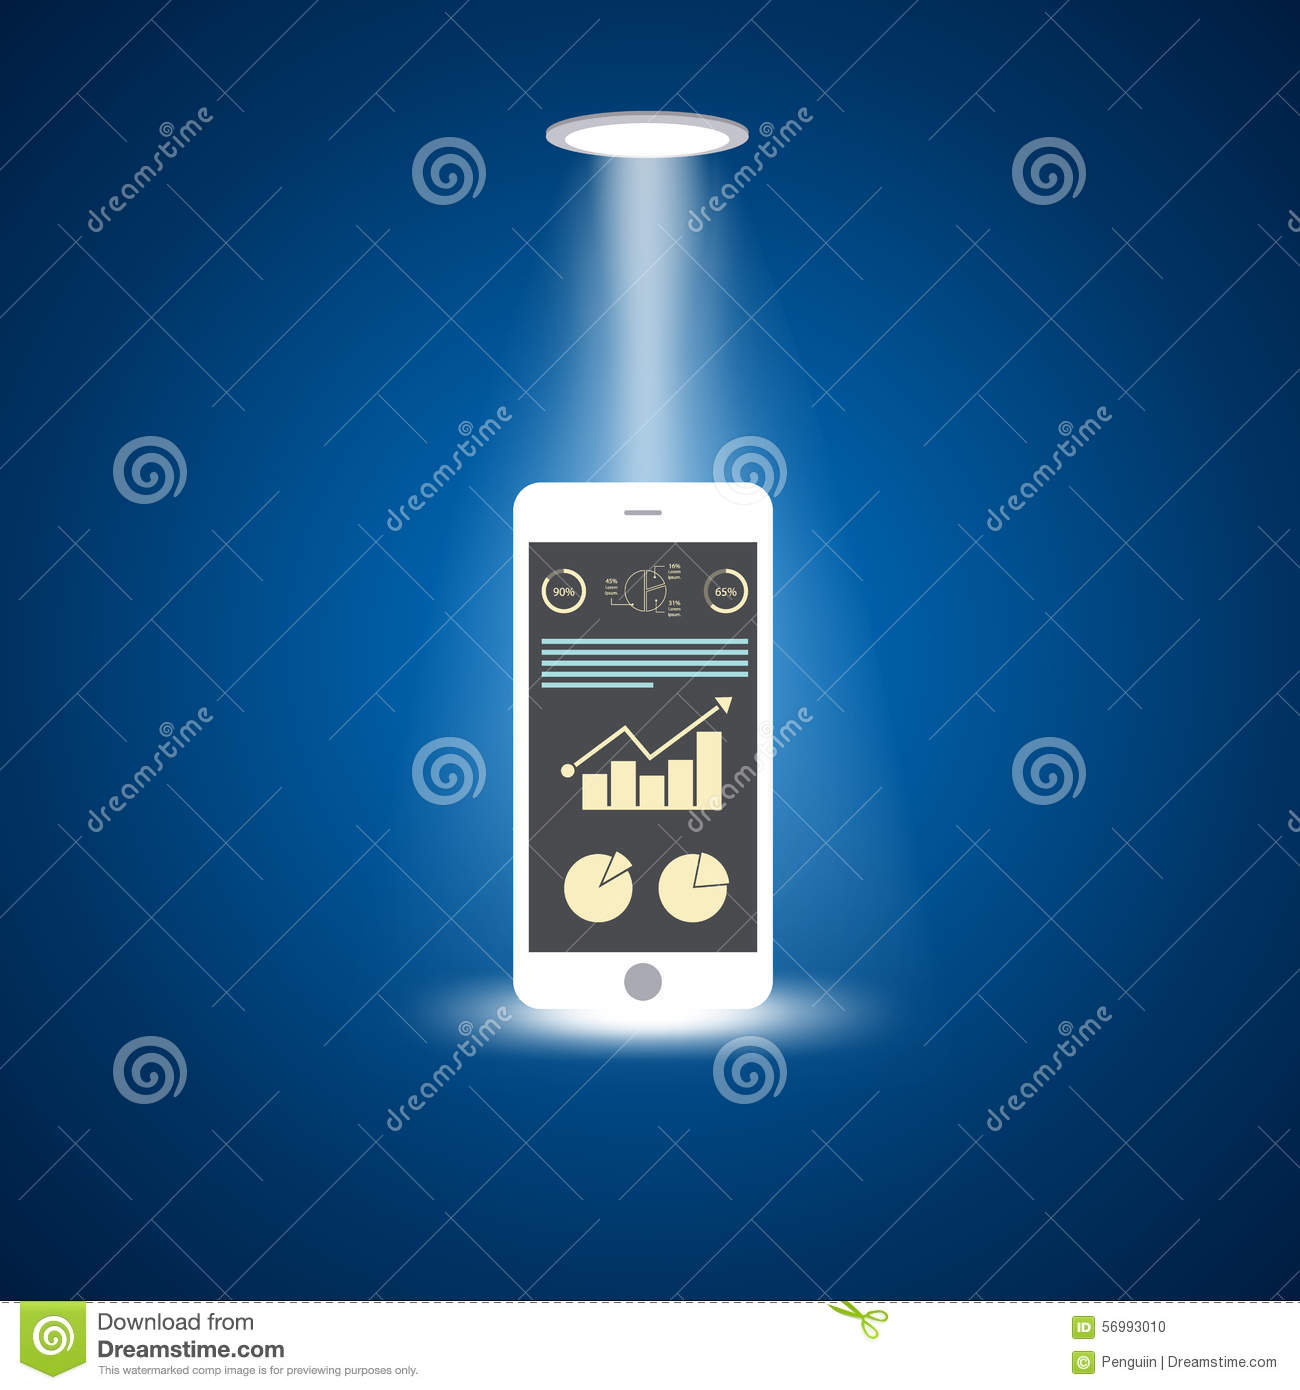 Smart phone with increasing bar chart on the screen, flat design concept